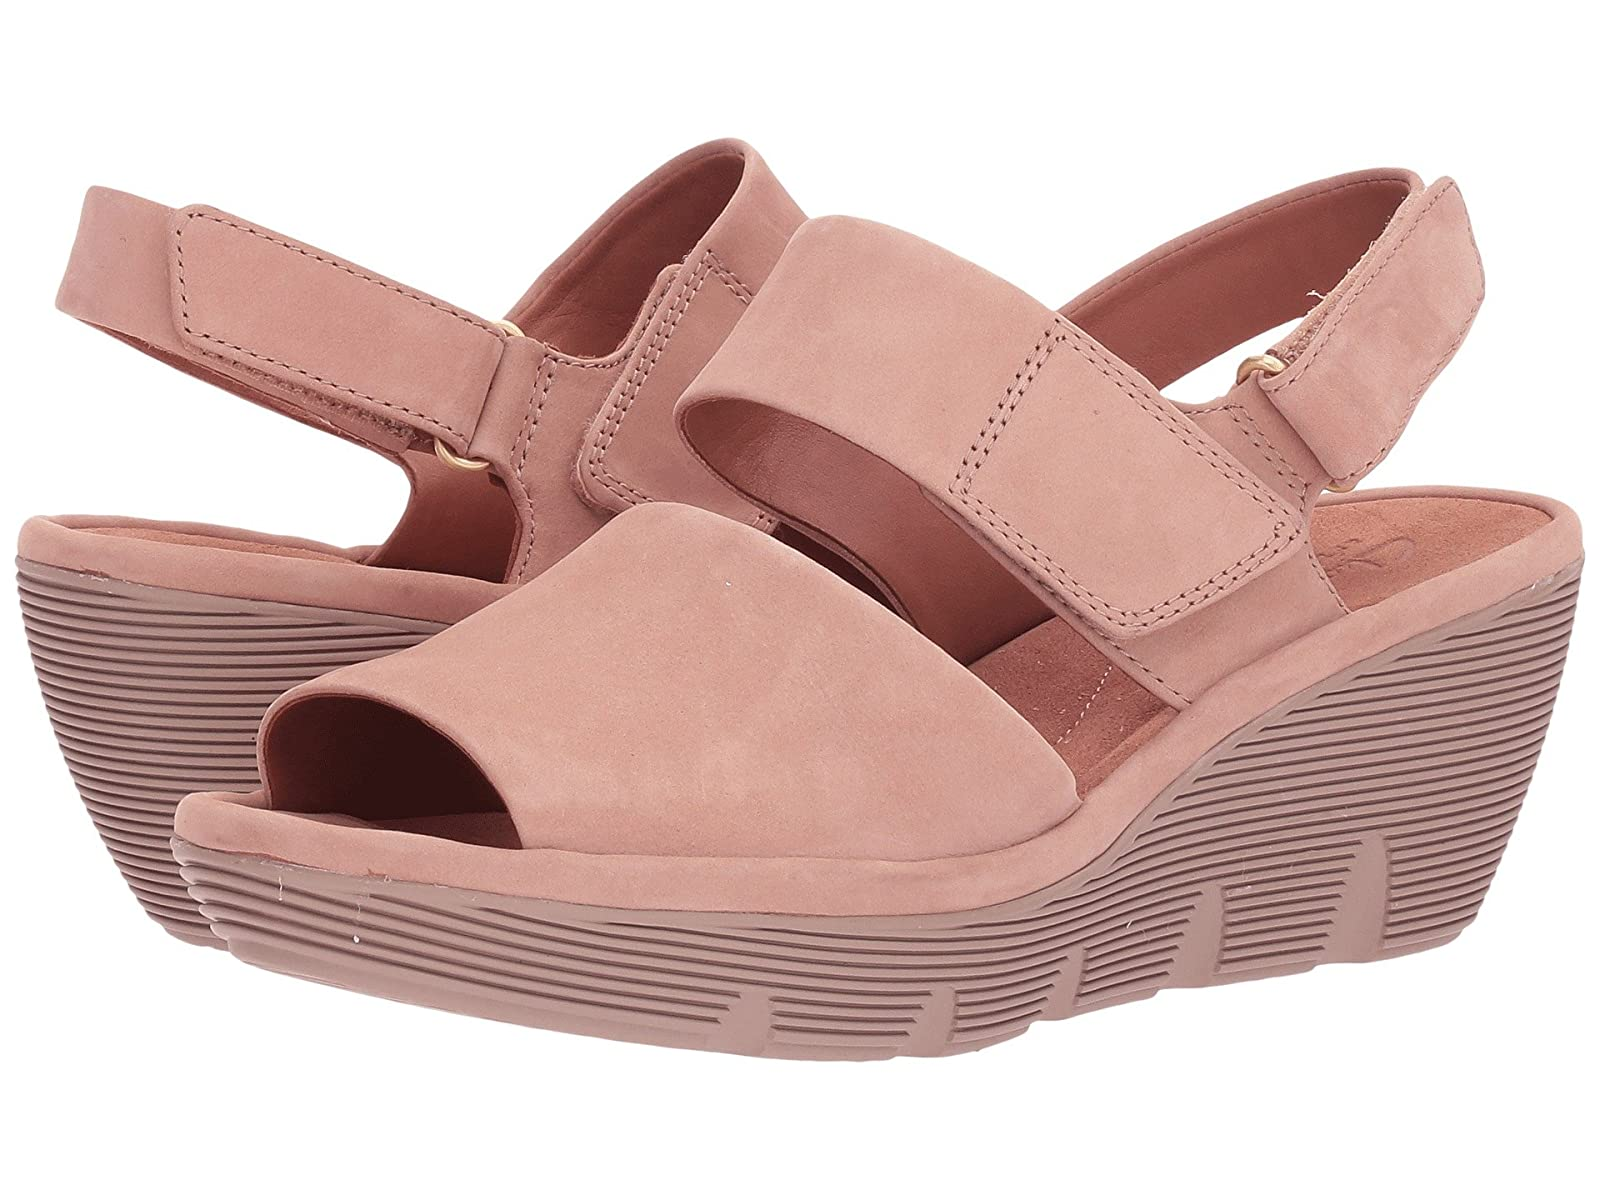 Clarks Clarene AllureCheap and distinctive eye-catching shoes